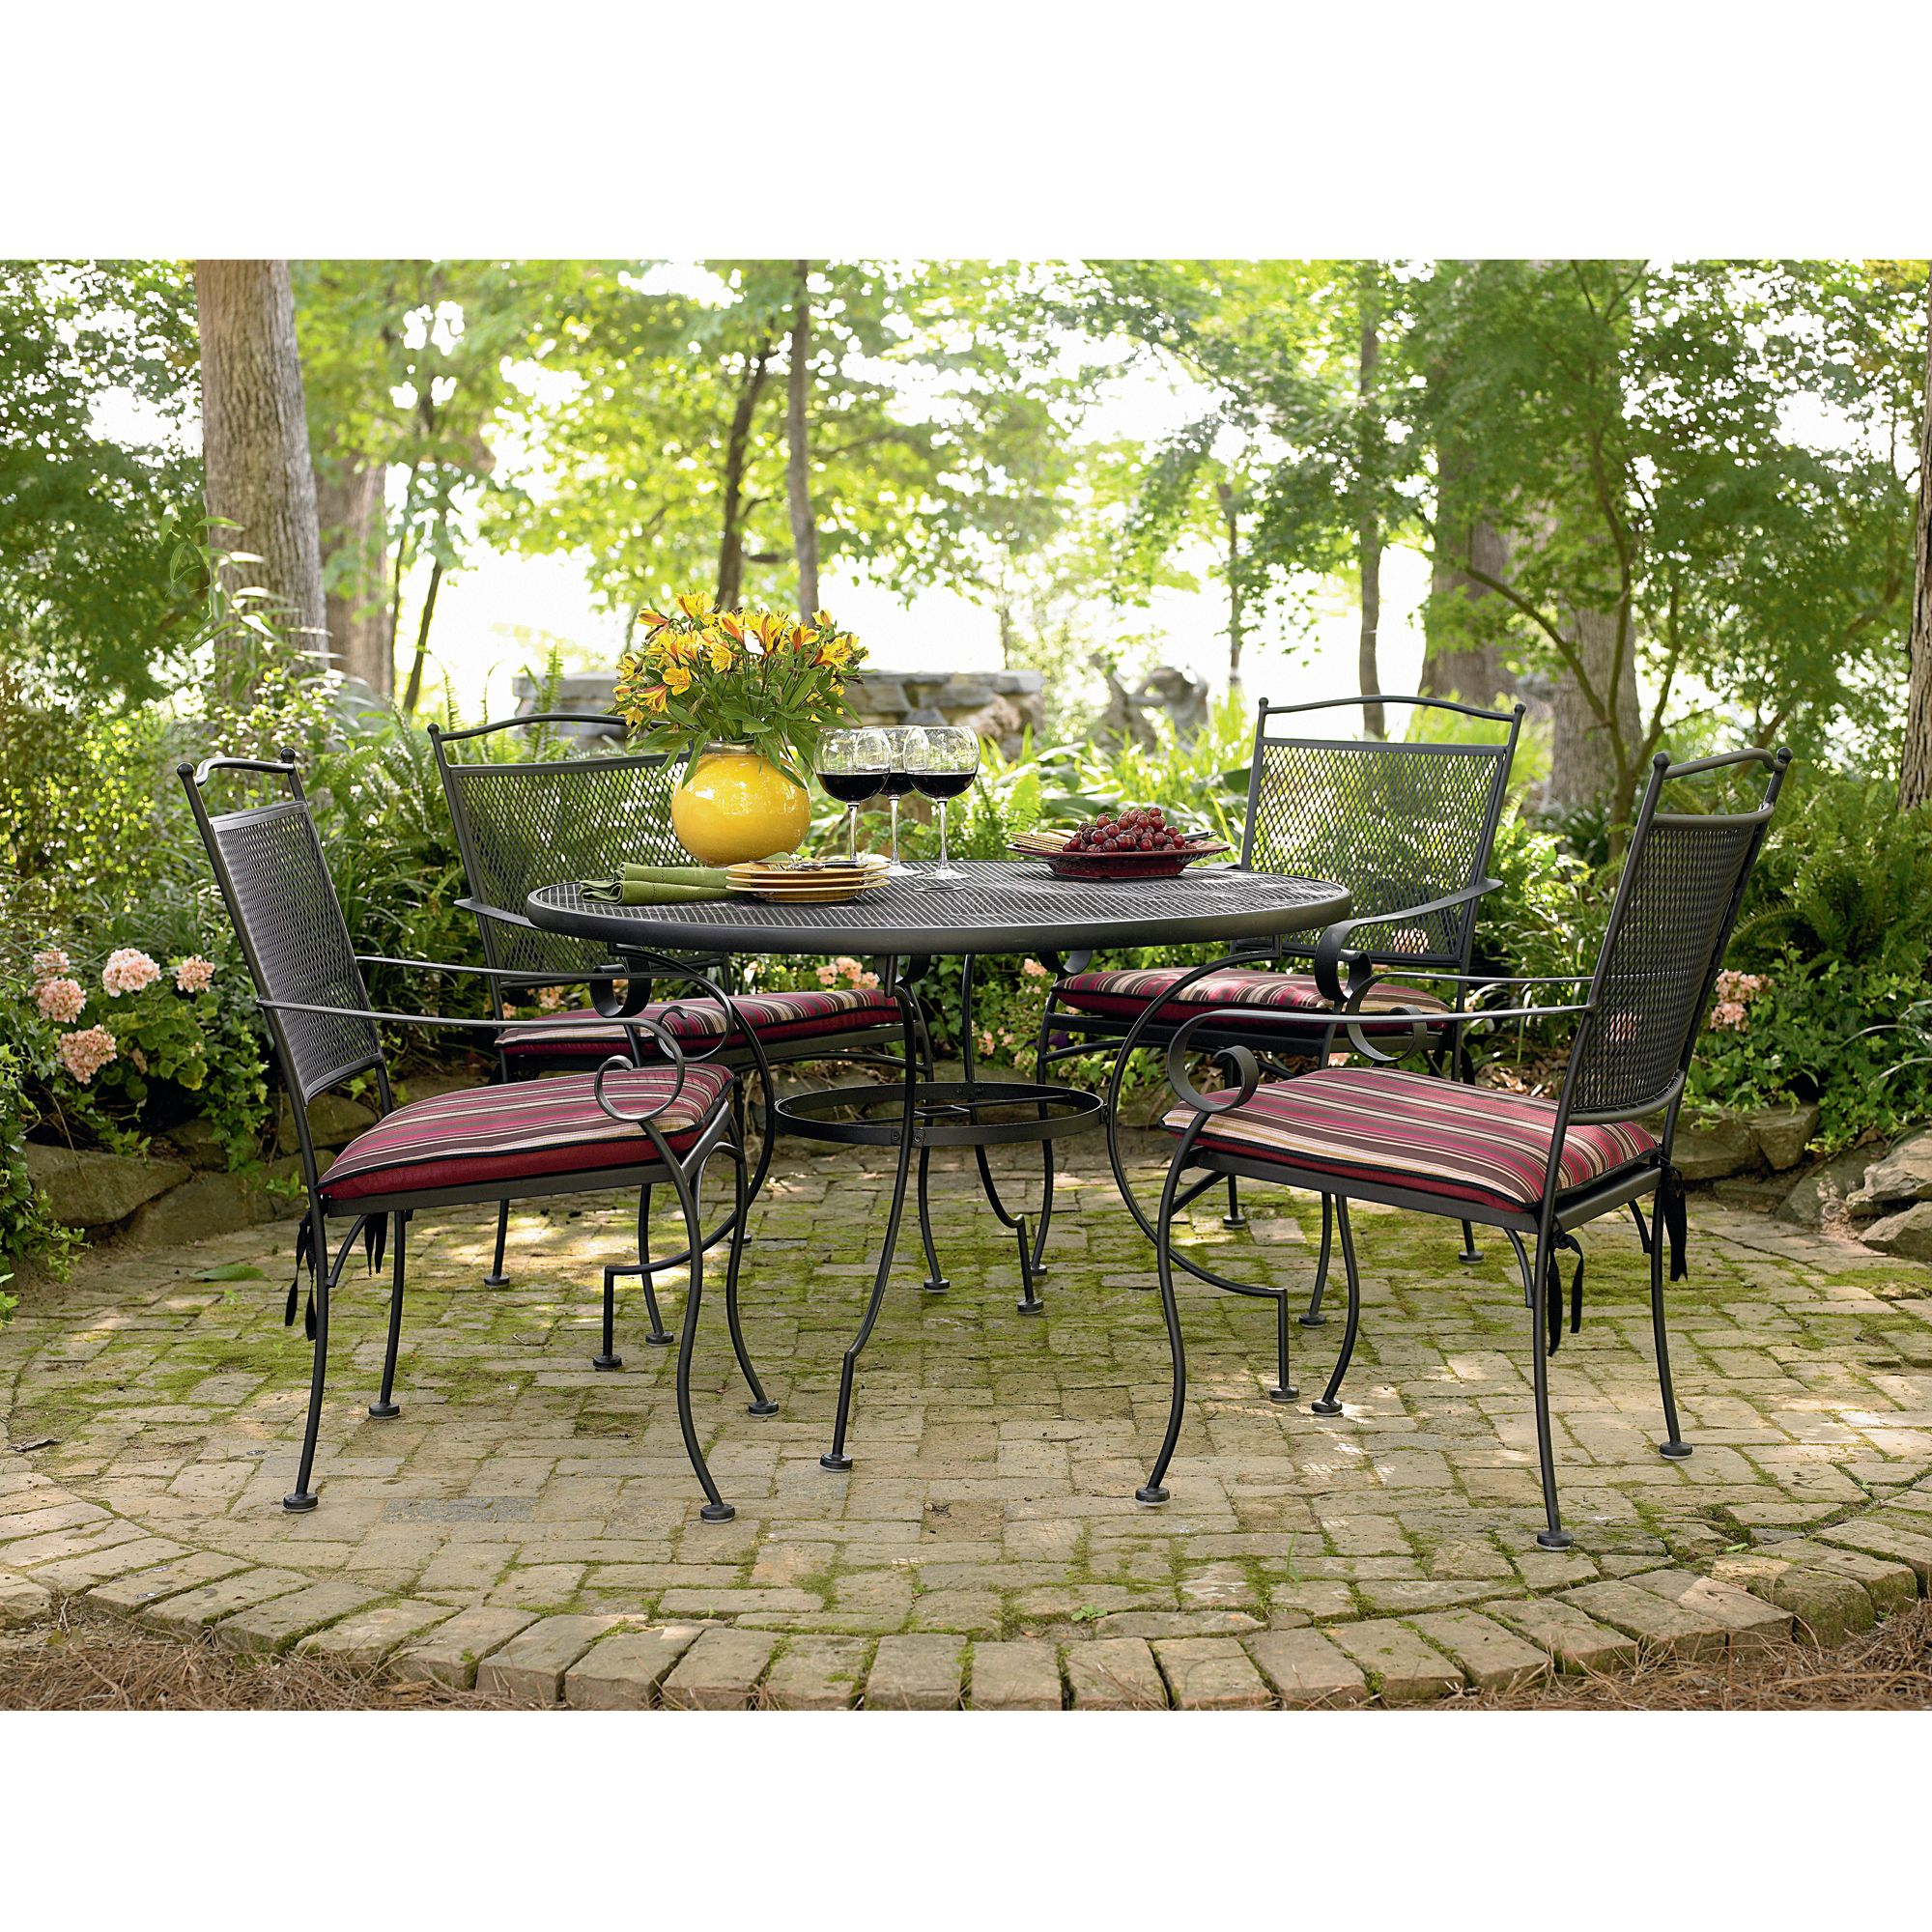 Garden Oasis  Dayton 5 Pc. Dining Set*